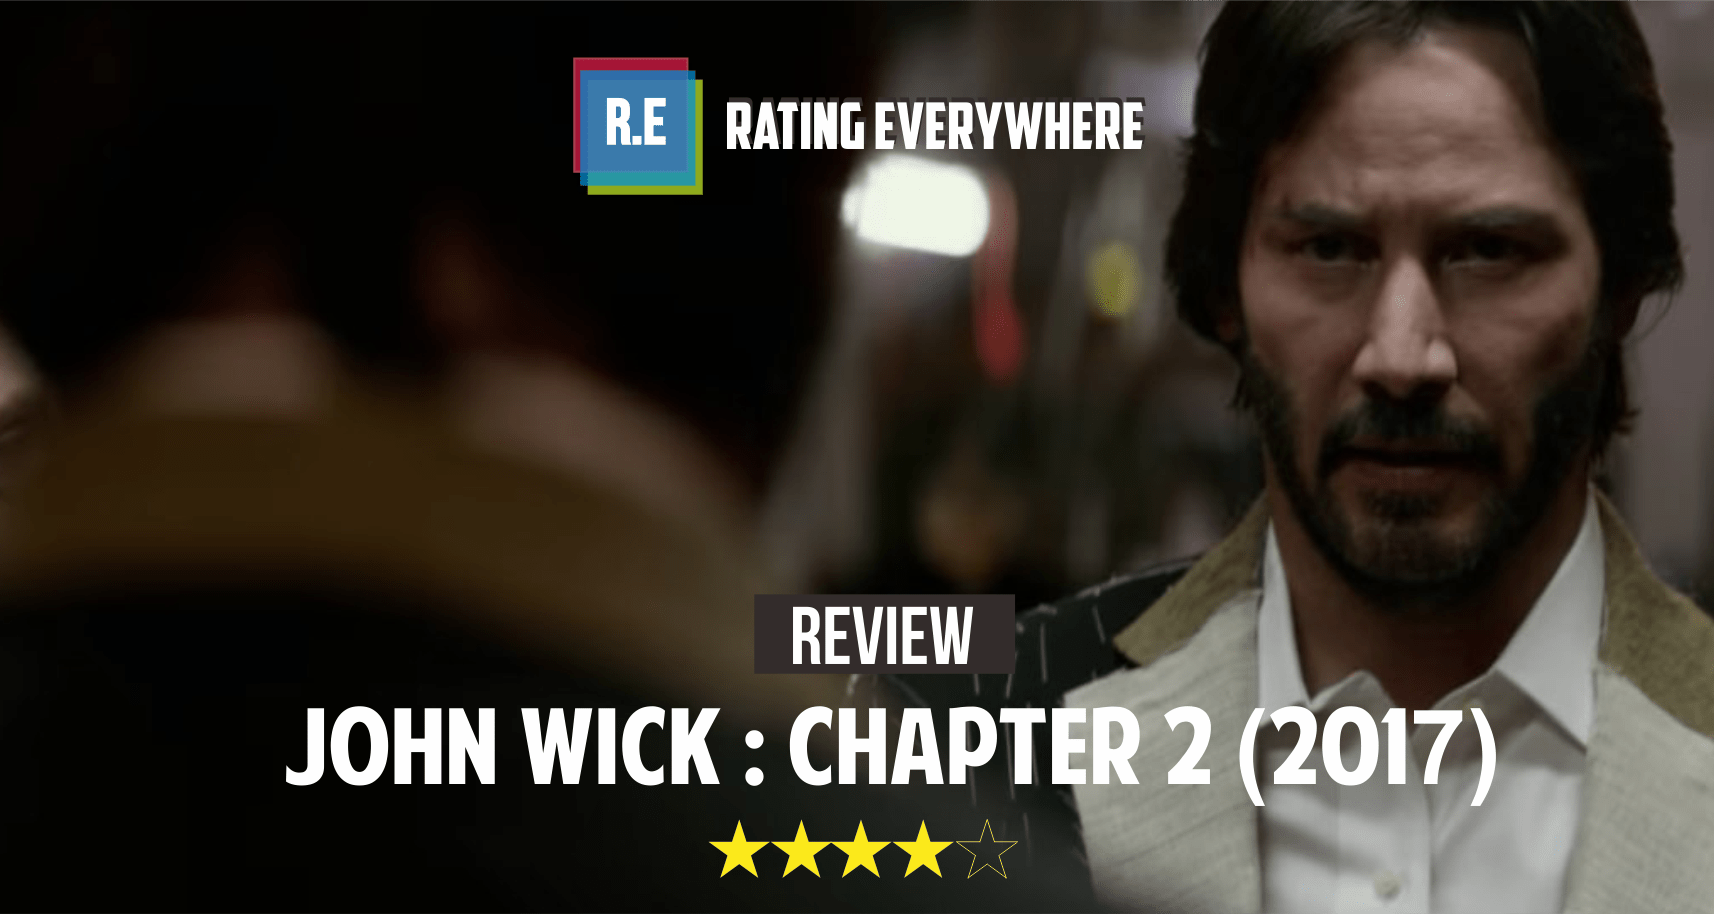 Review John Wick Chapter 2 2017 Rating Everywhere